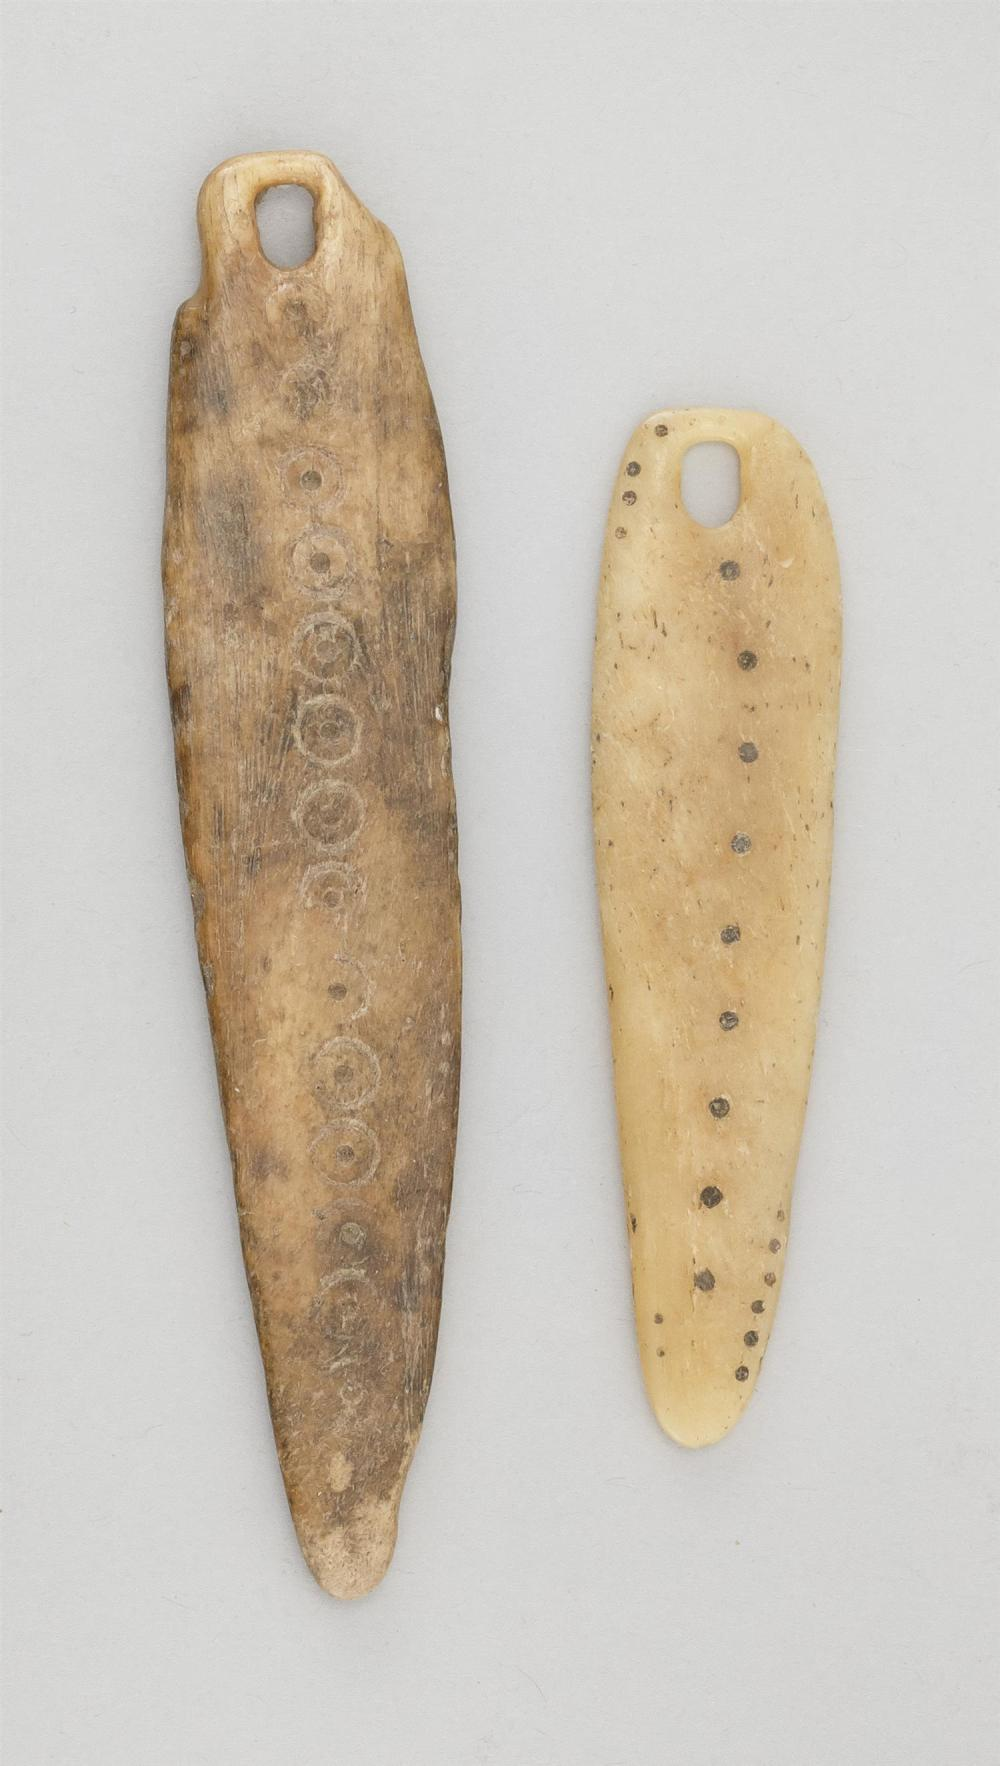 """TWO BONE AMULETS, PROBABLY YUPIK ESKIMO Both with incised circle and dot embellishments. Lengths 3"""" and 4"""". This item is not availab..."""